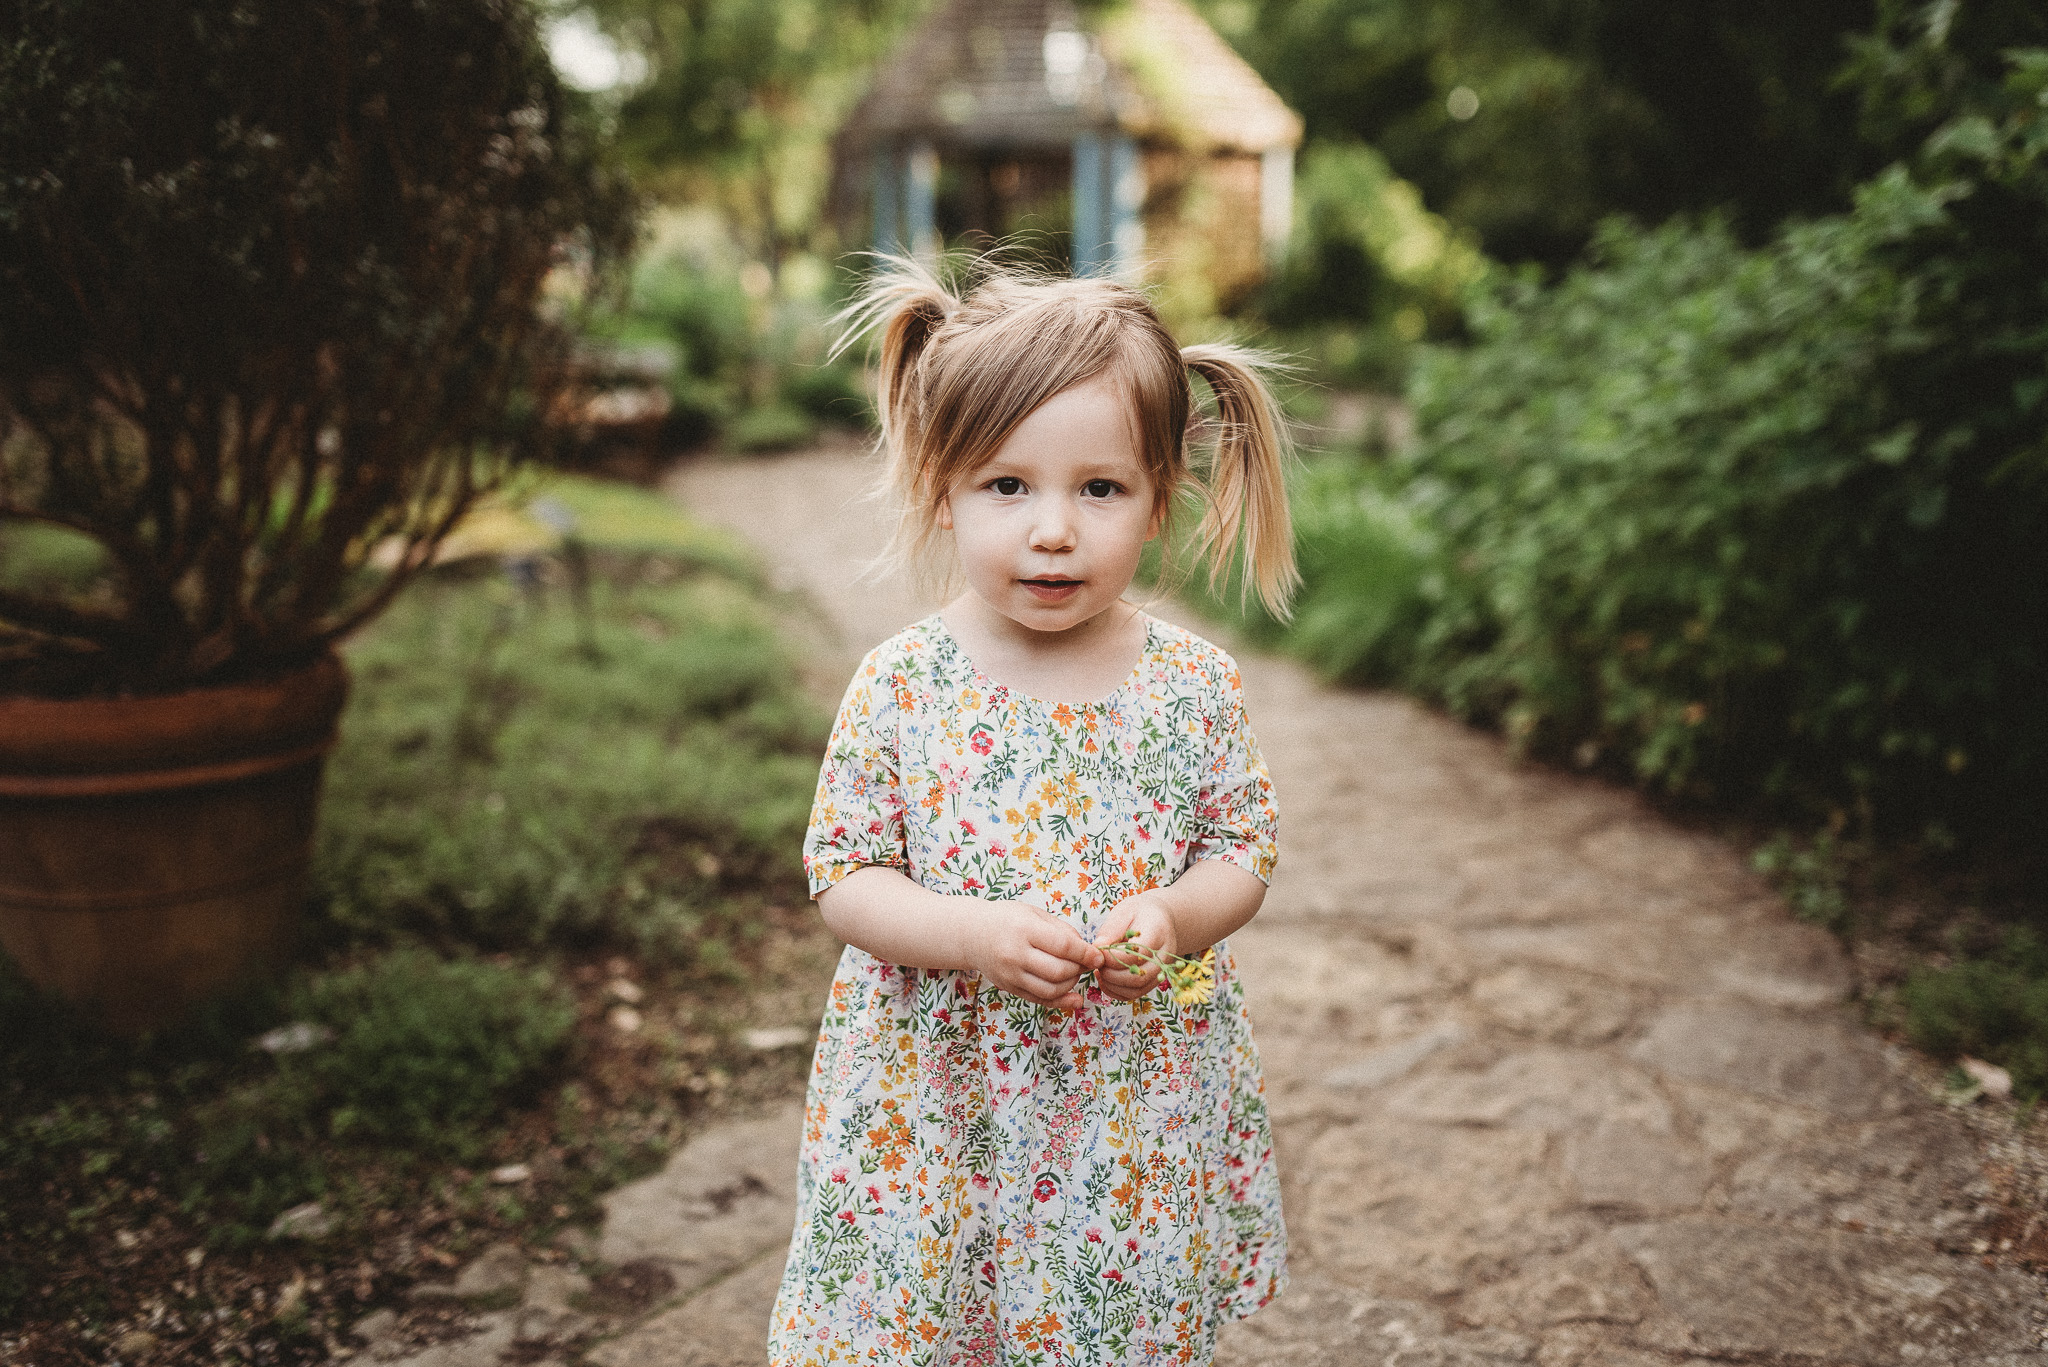 Outdoor-Lifestyle-Newborn-Photos-Inniswood-Botanical-Garden